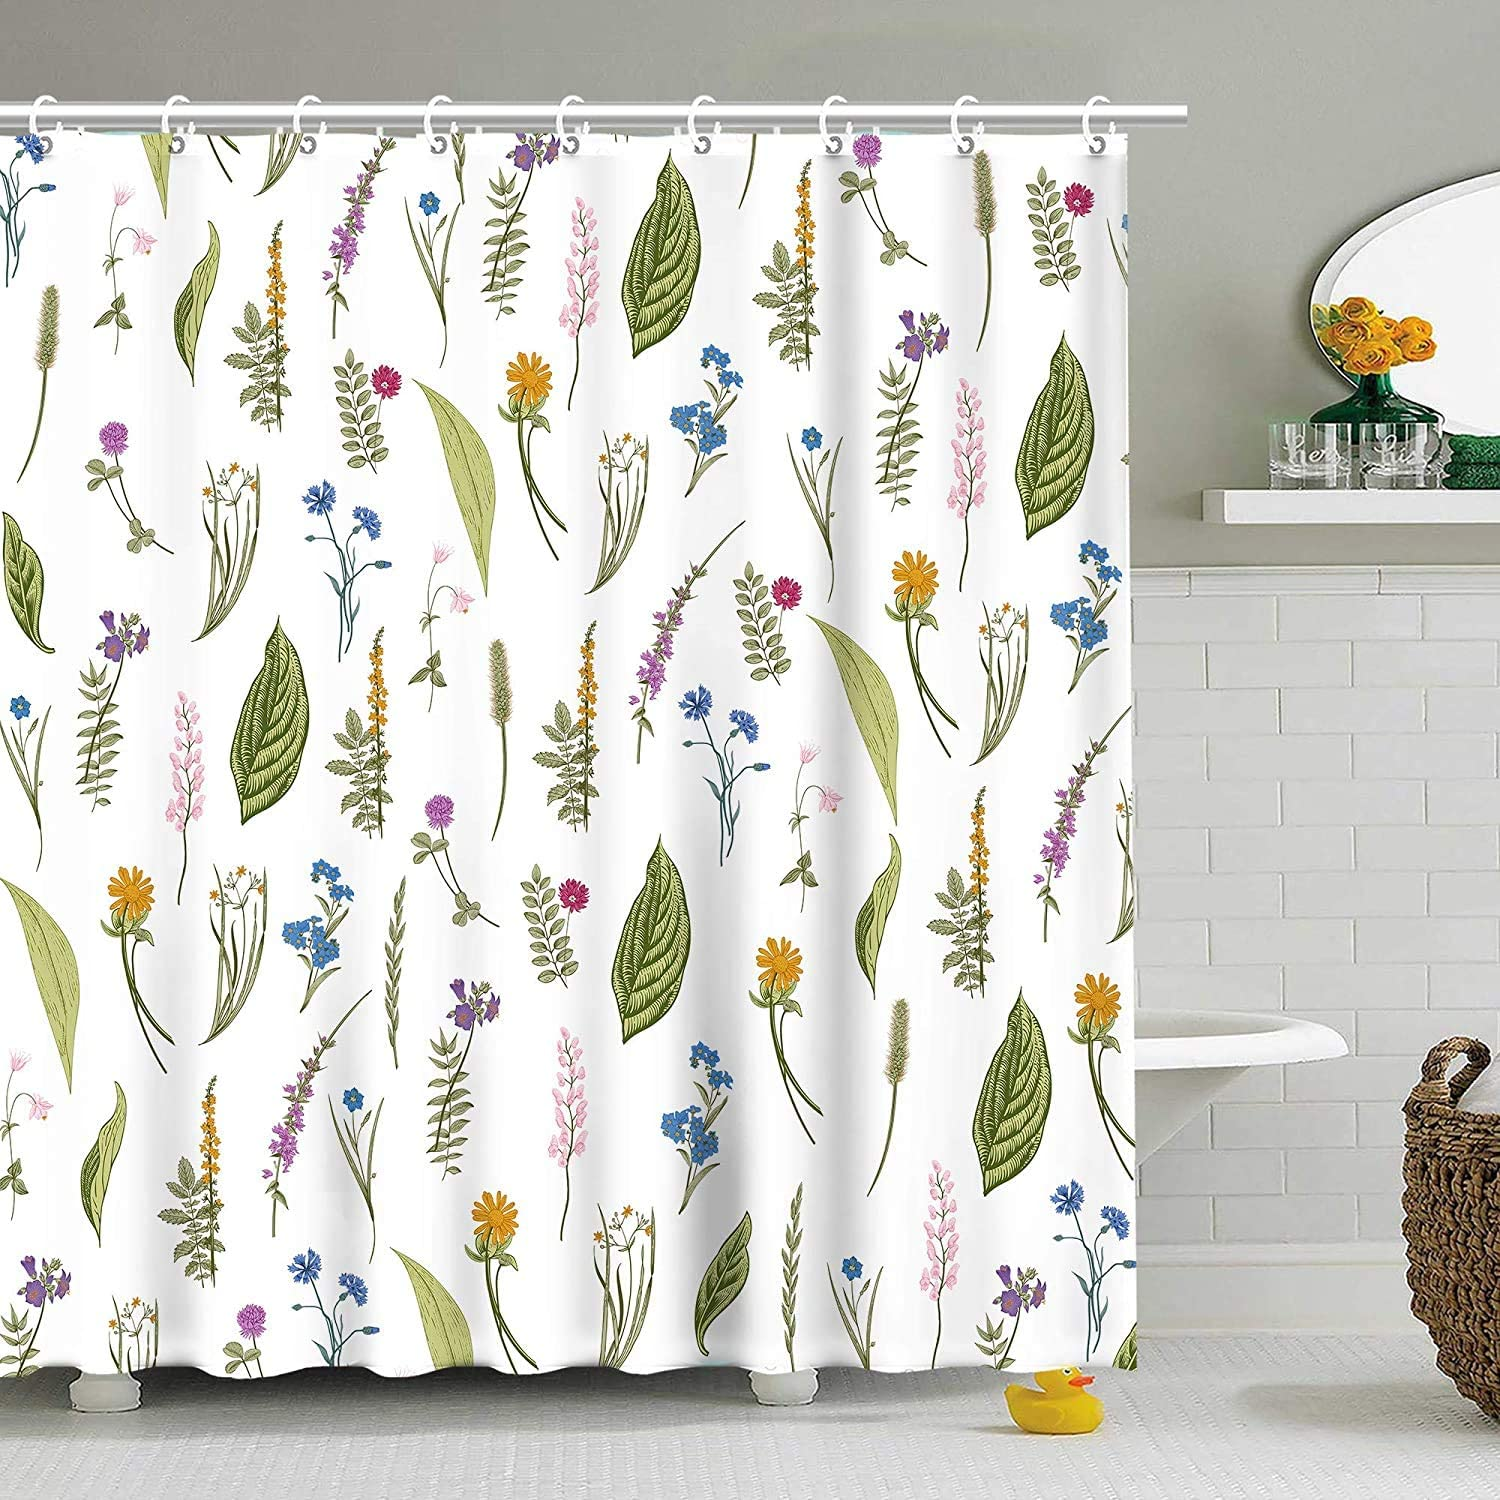 Stacy Fay Shower Curtain Green Leaves Floral Flower Plants White Bathroom Set Decor Polyester Waterproof 72x72 Inch Plastic Hooks 12 Pack